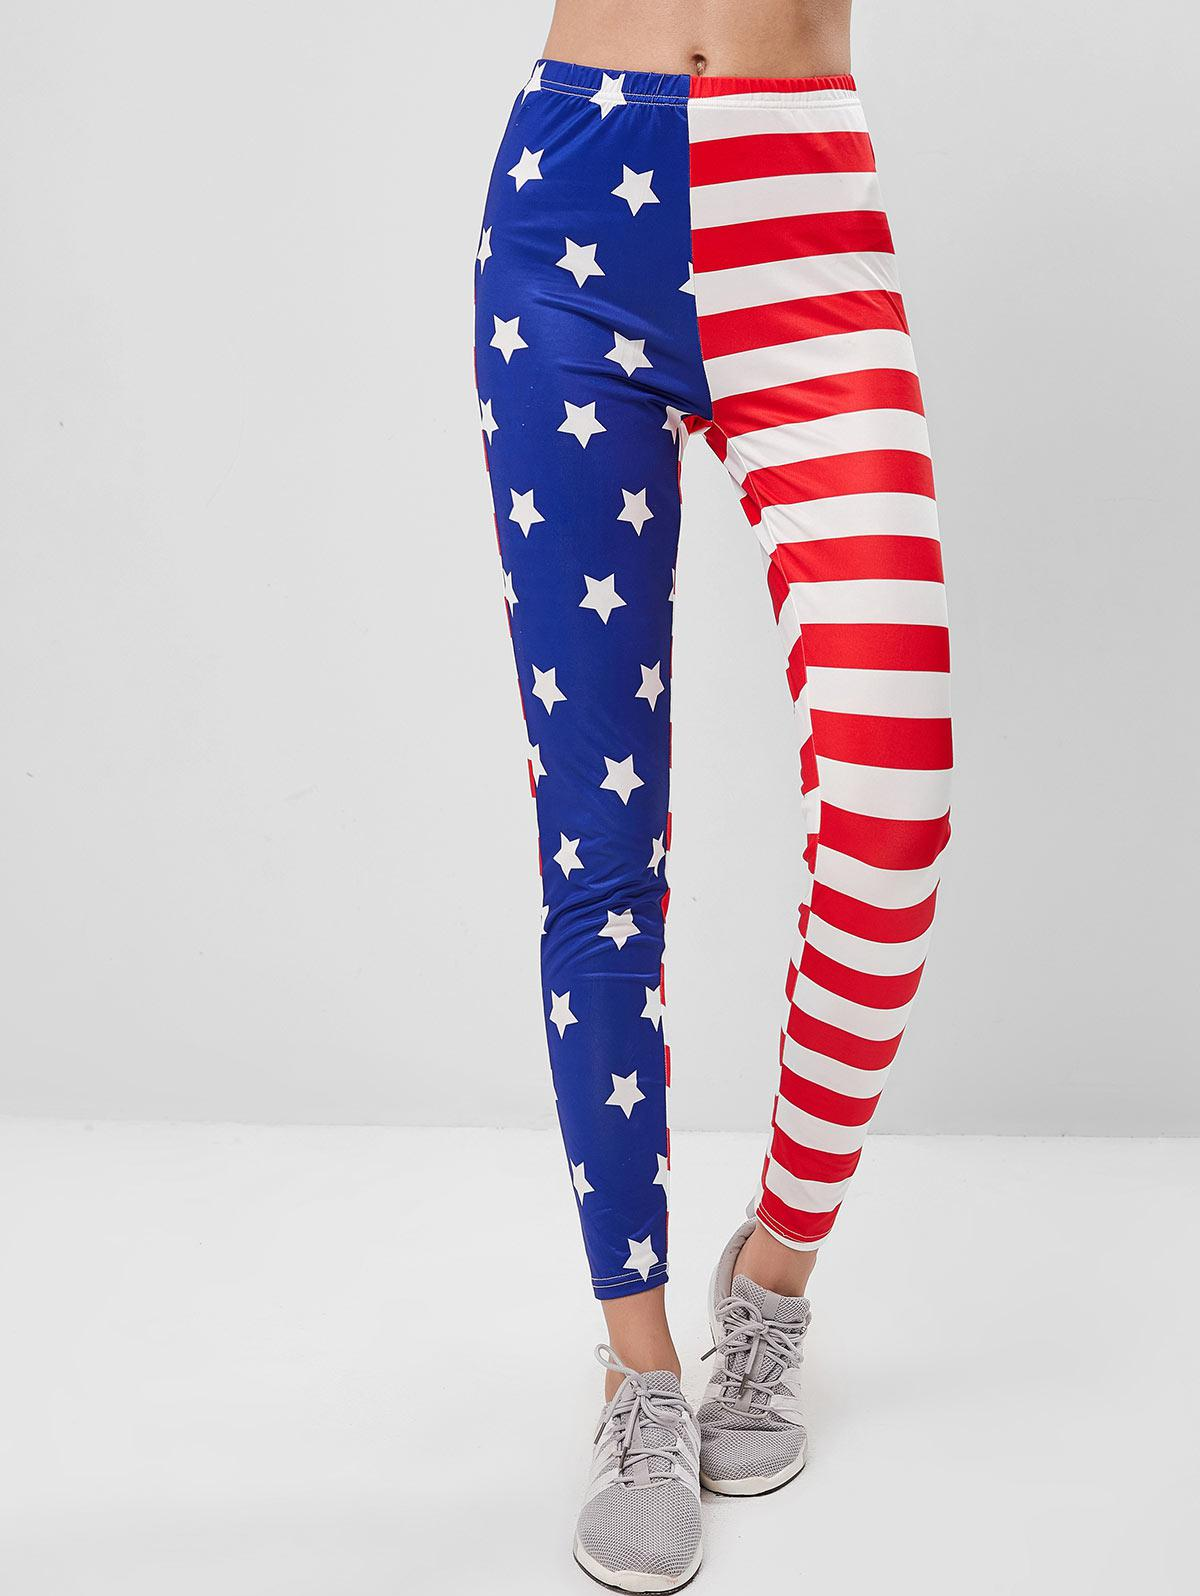 ZAFUL Stars and Striped American Flag Leggings